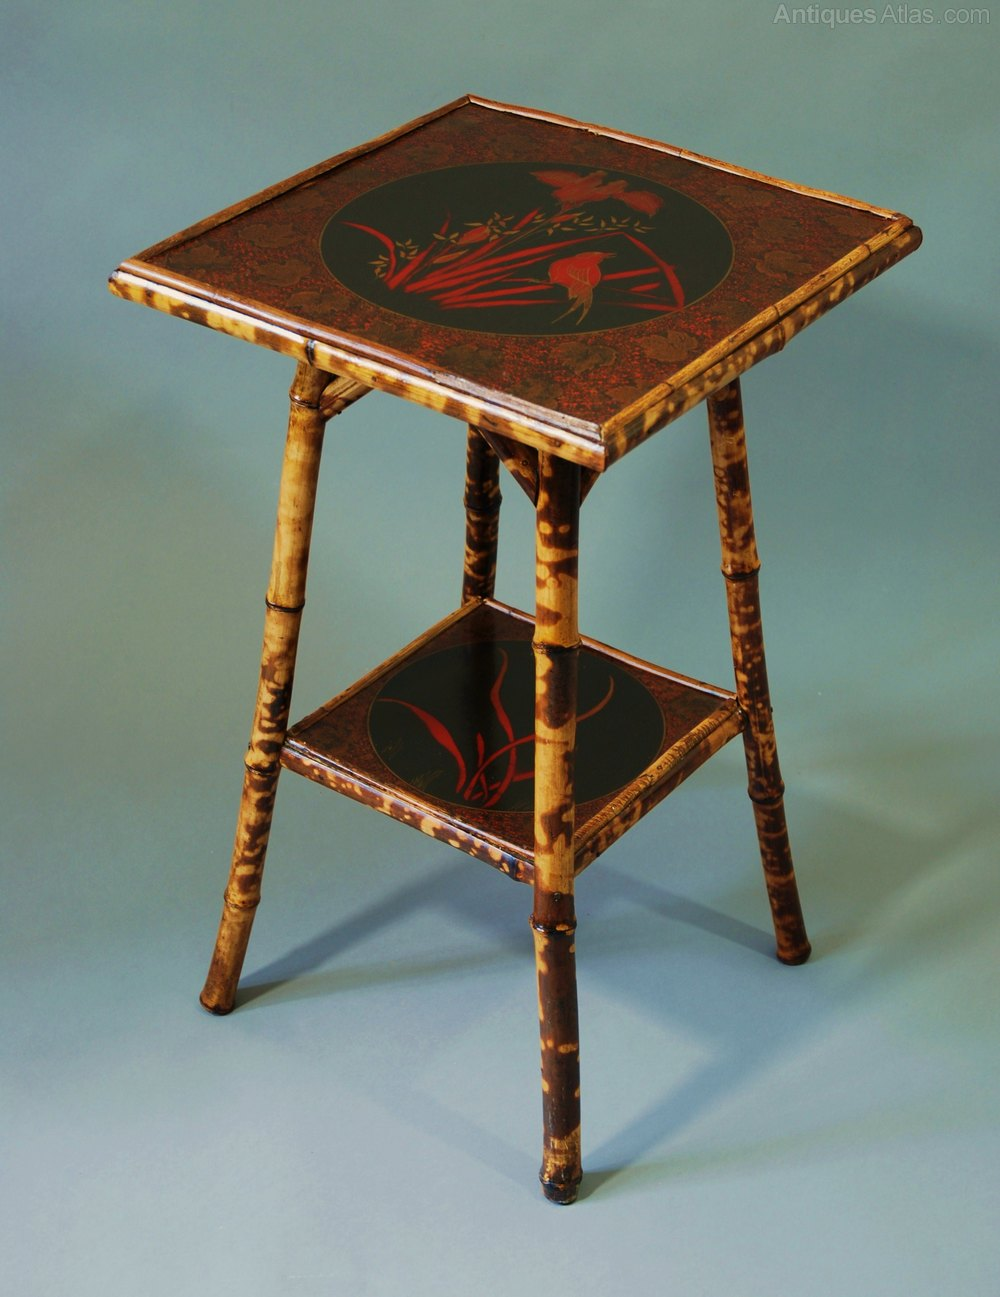 Early 20th Century Two Tier Bamboo Table Antiques Atlas